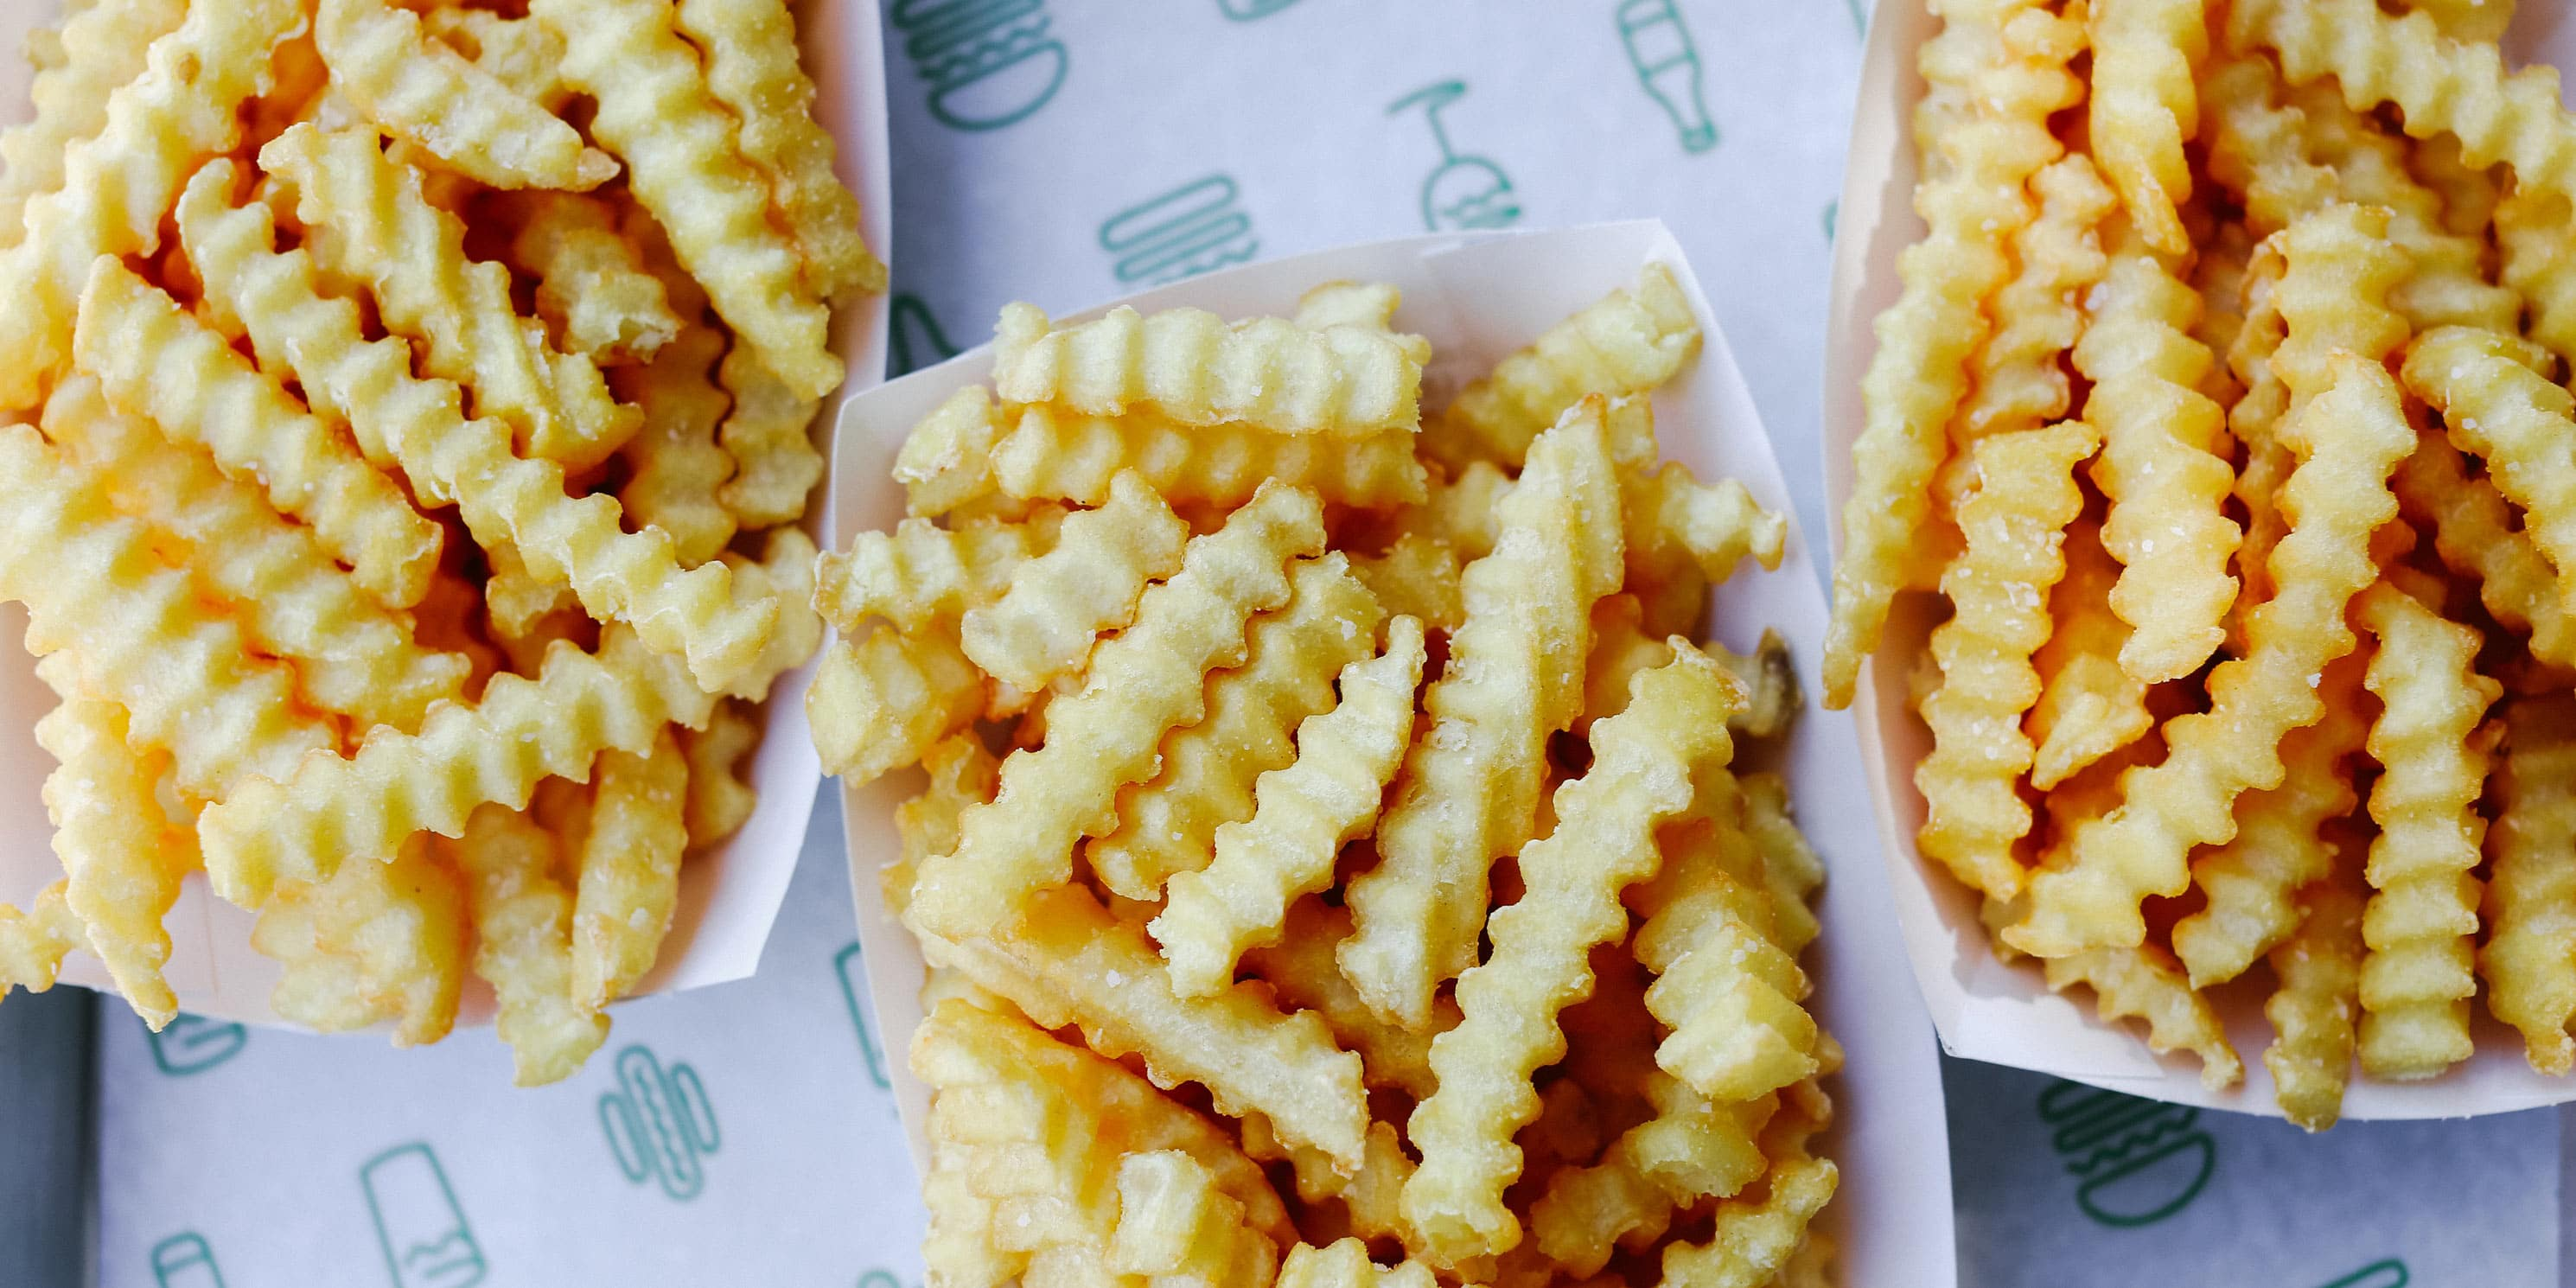 Shake Shack fries in paper trays